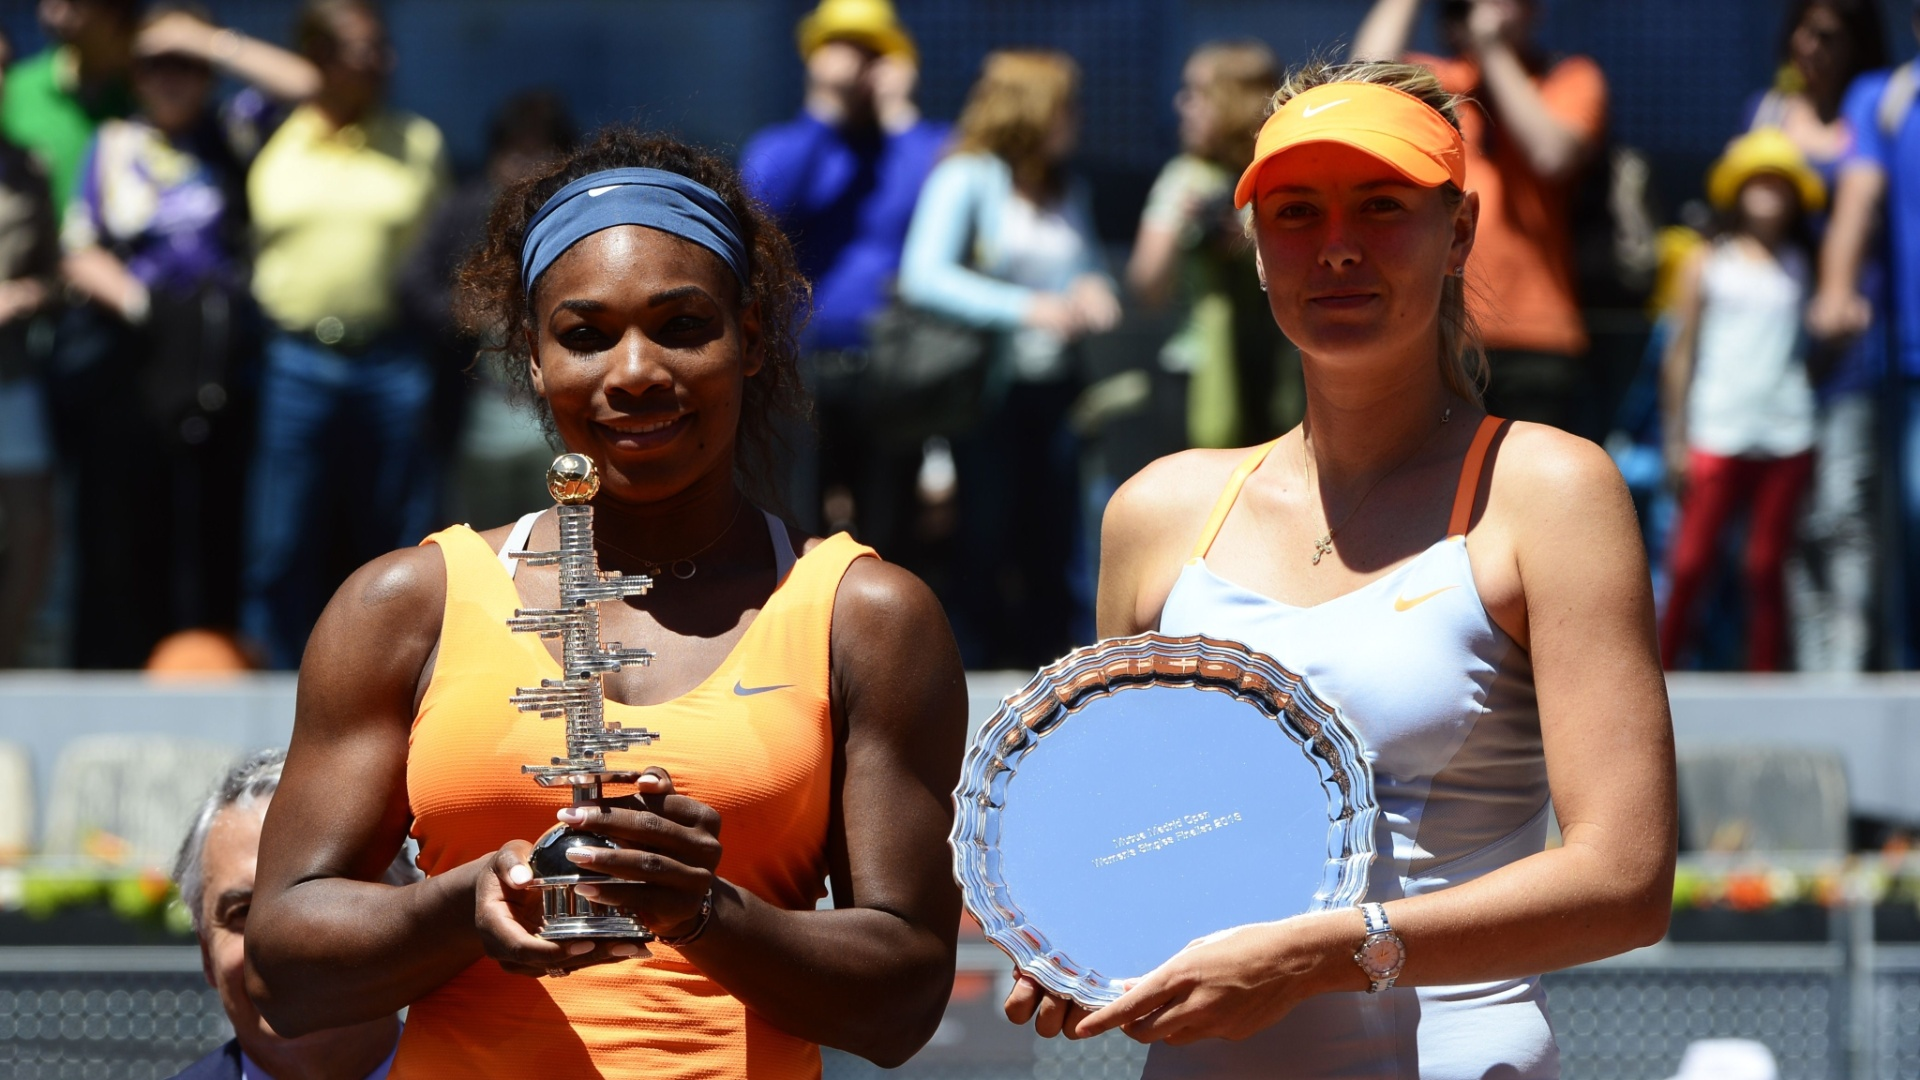 12.mai.2013 - Finalistas do Masters 1000 de Madri, Serena e Sharapova exibem os trofus de campe e vice, respectivamente